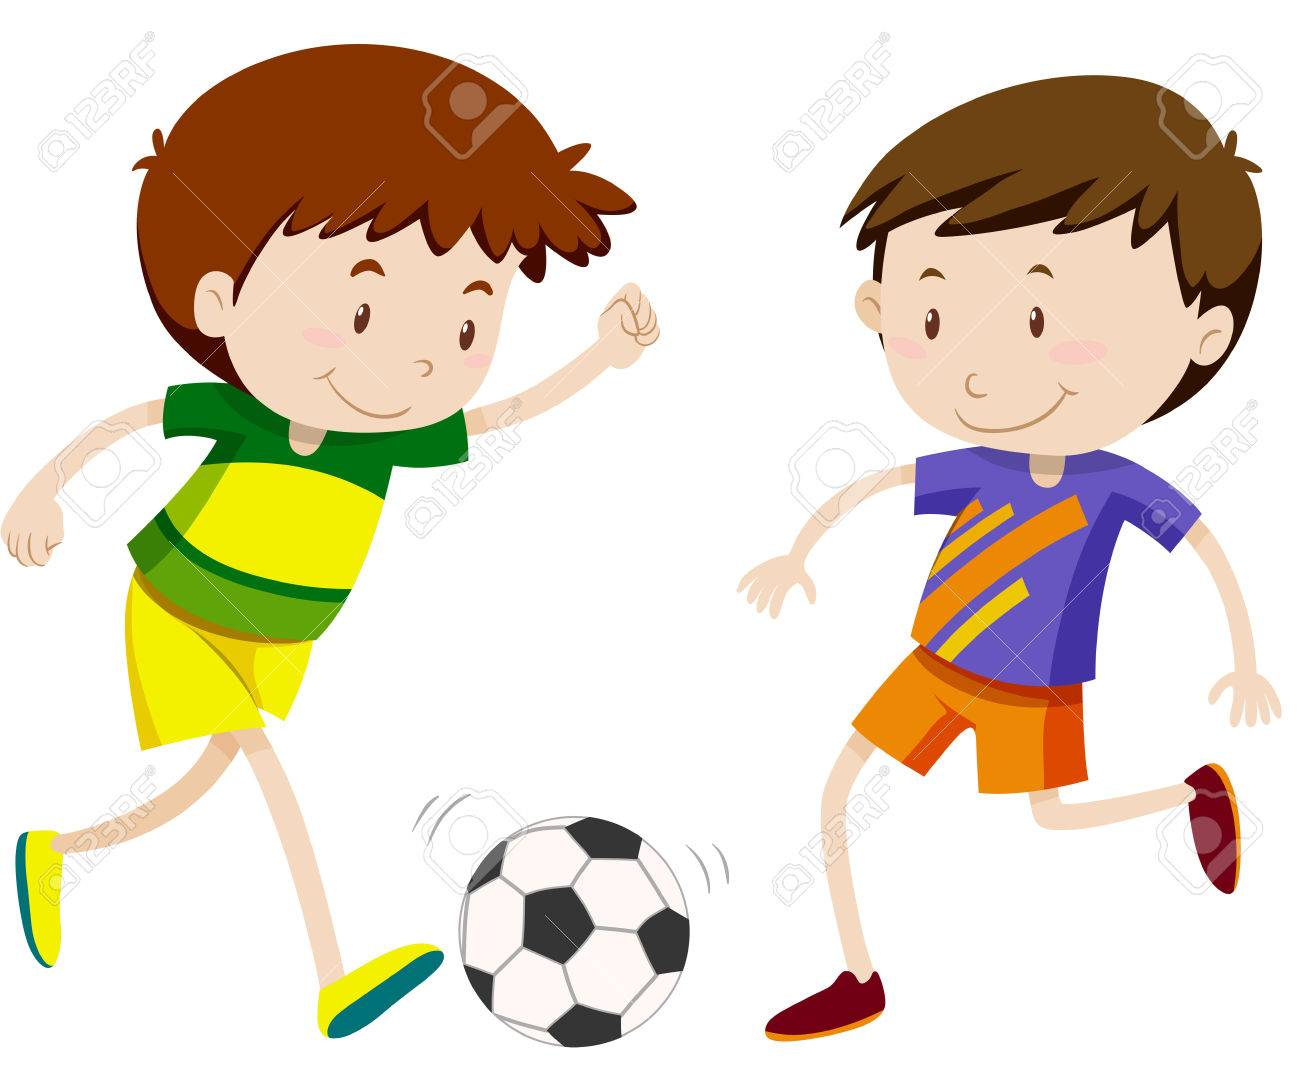 Two boy playing soccer illustration.